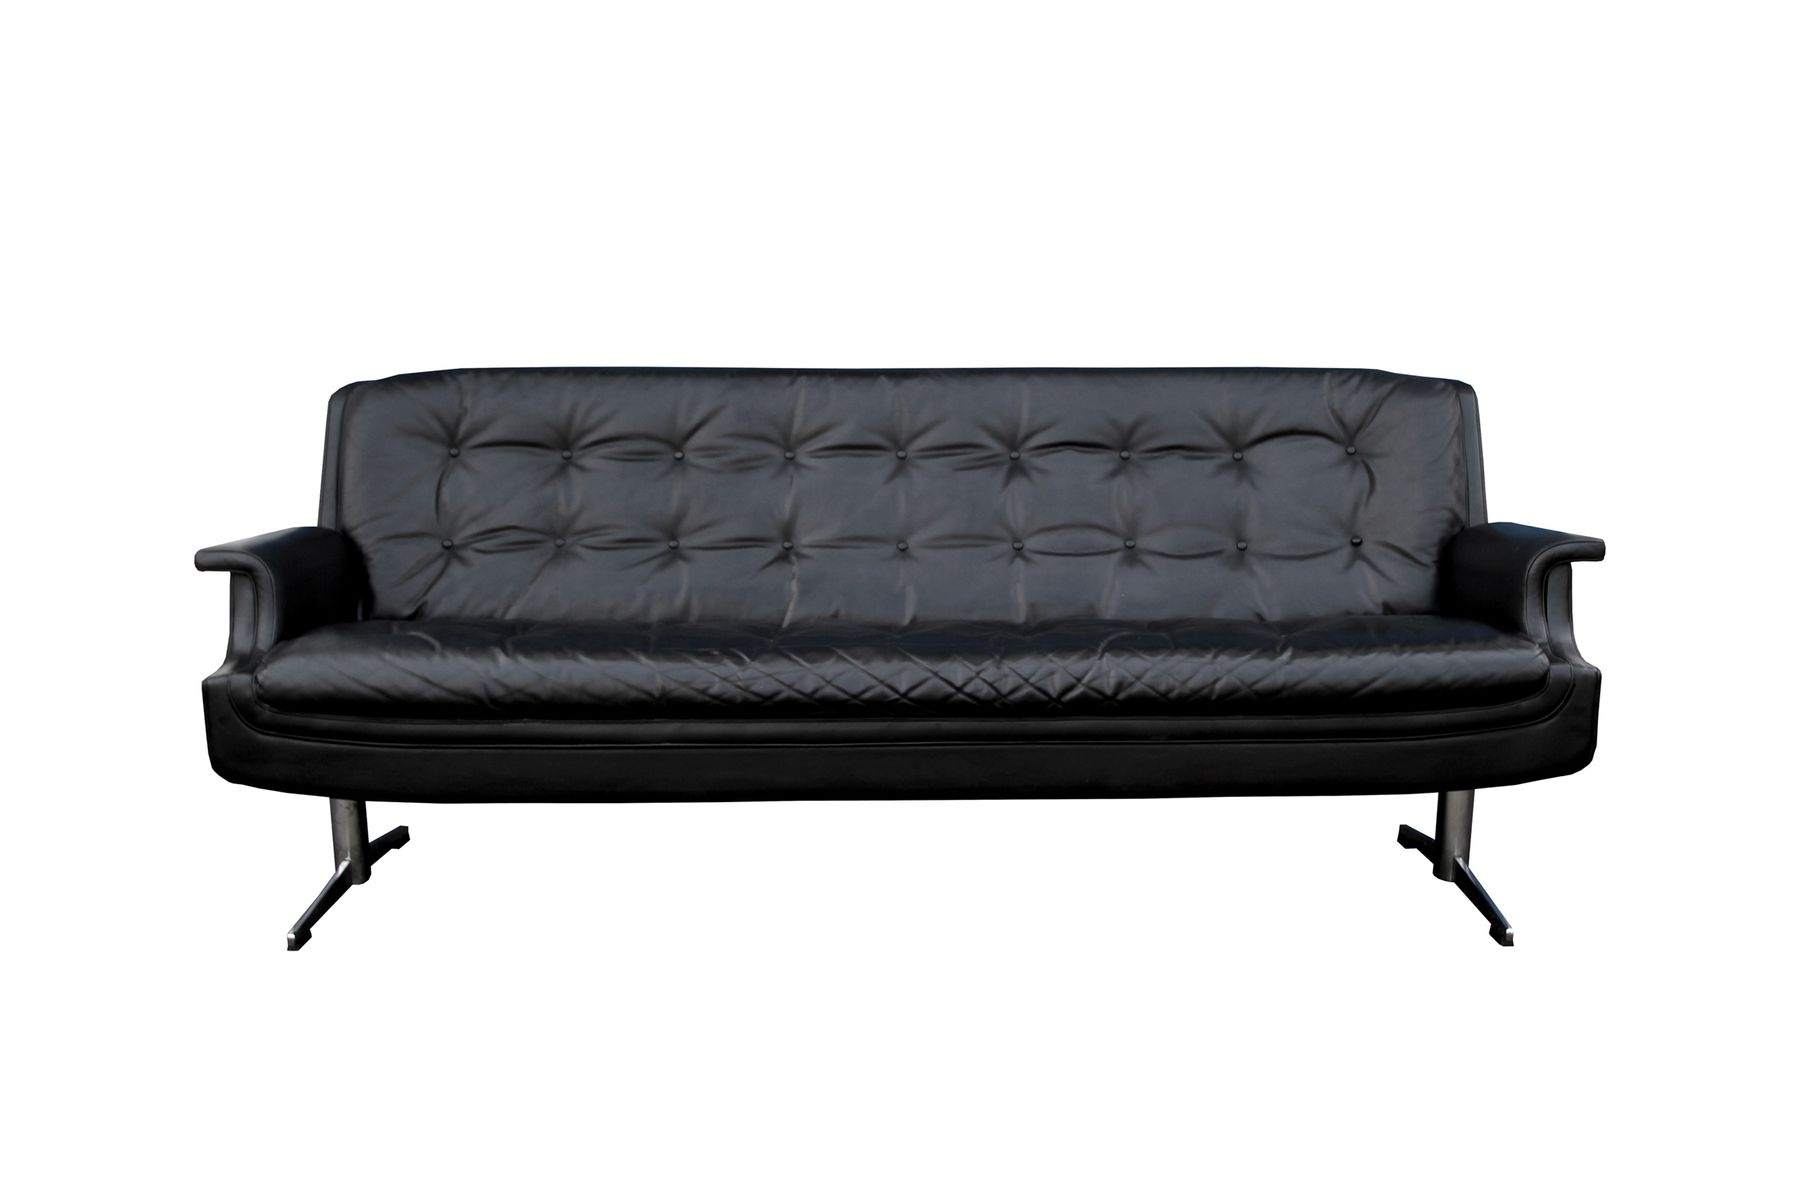 space age 3 sitzer ledersofa 1960er bei pamono kaufen. Black Bedroom Furniture Sets. Home Design Ideas